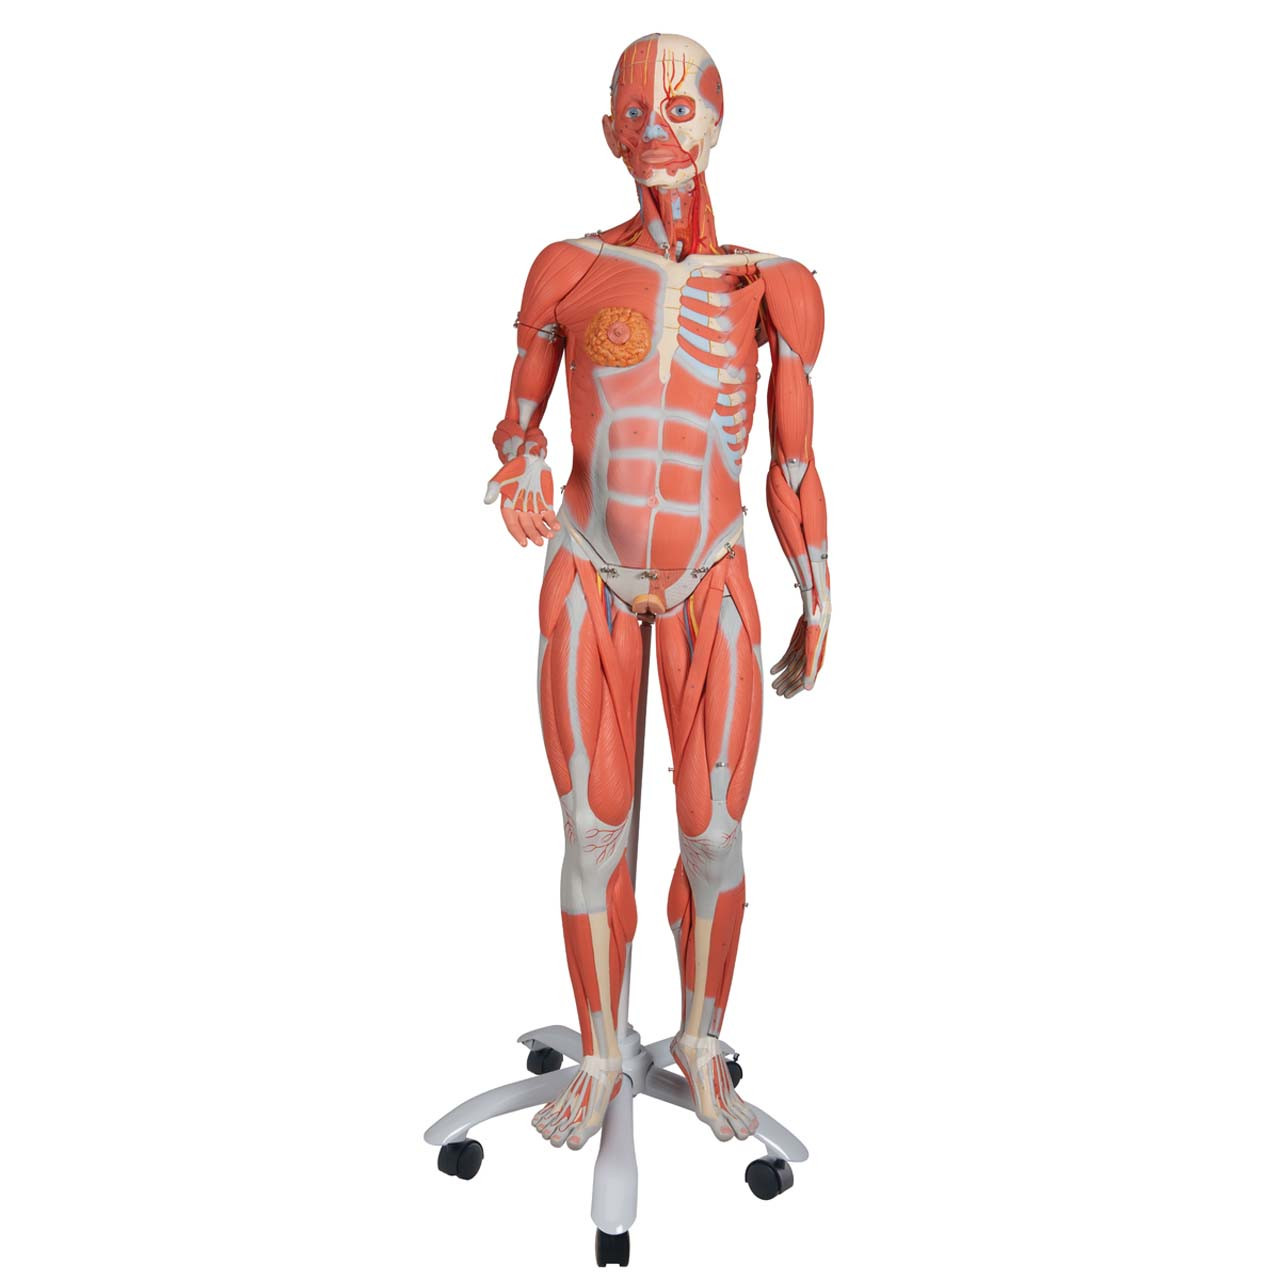 1013882 - 3/4 Life-Size Female Muscle Model on a metal stand without internal organs, 23-part